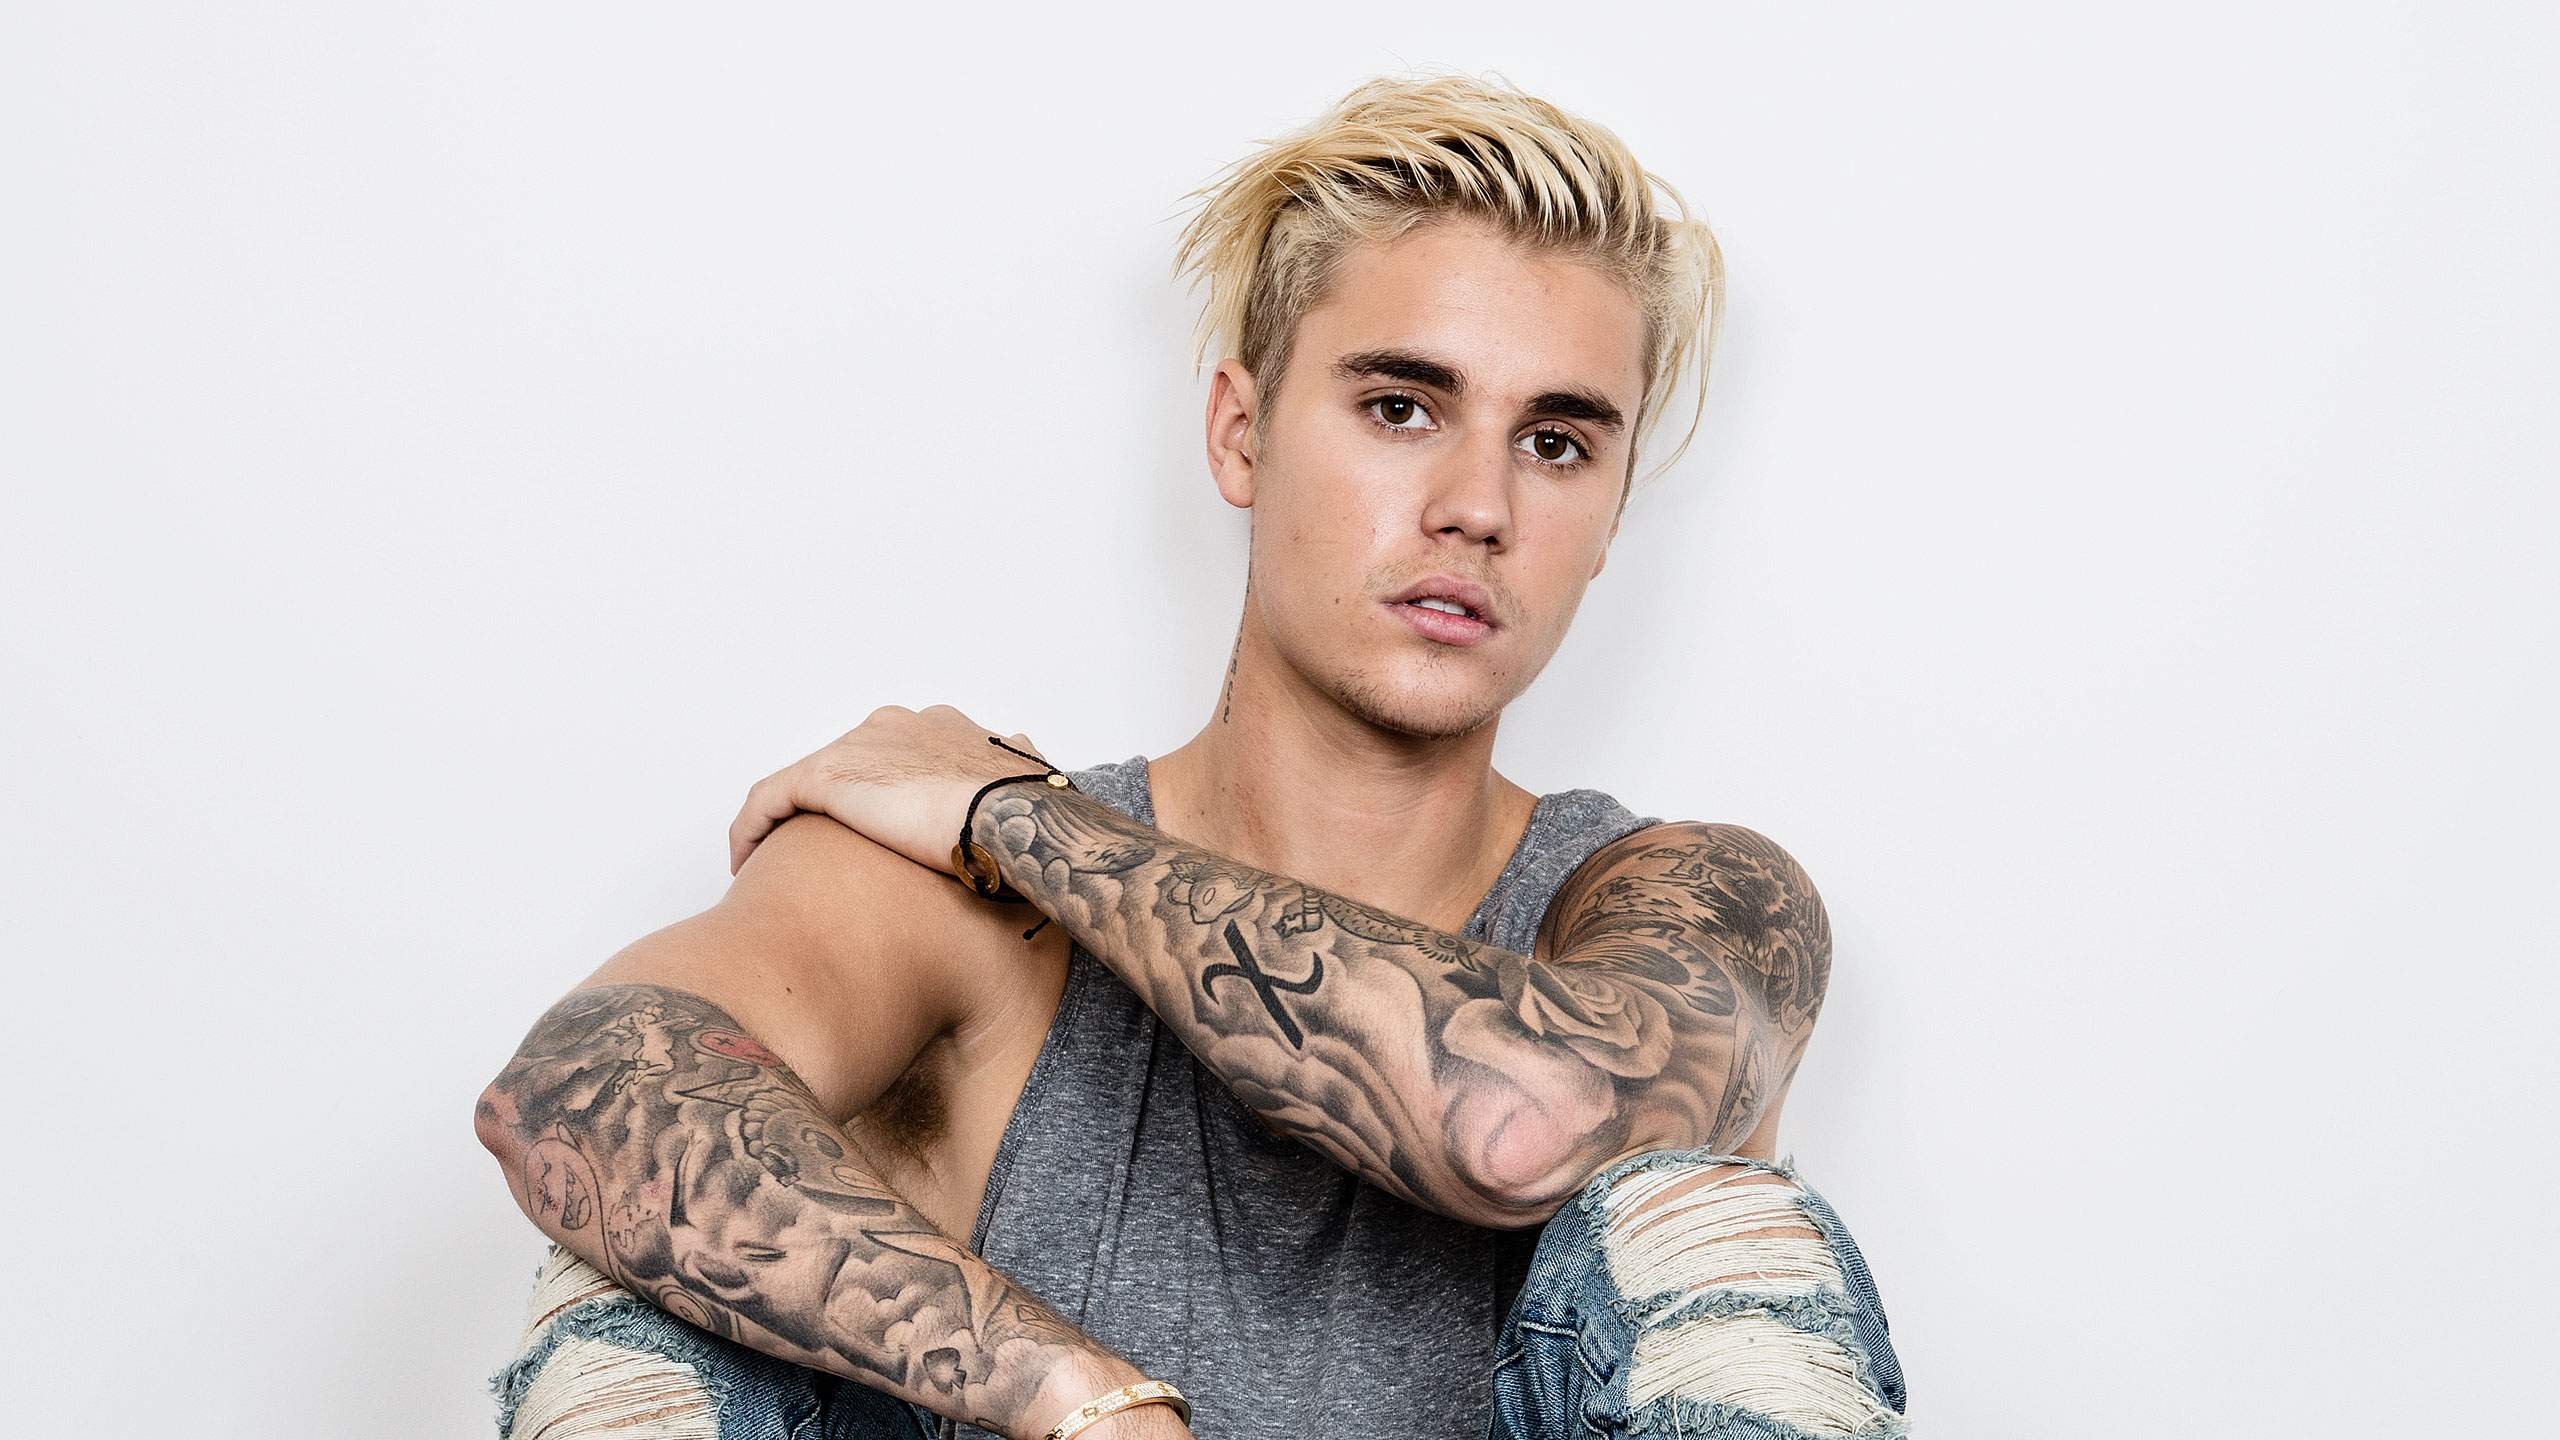 Justin Bieber tells UK fans to 'shut up' and calls them 'obnoxious' during performances